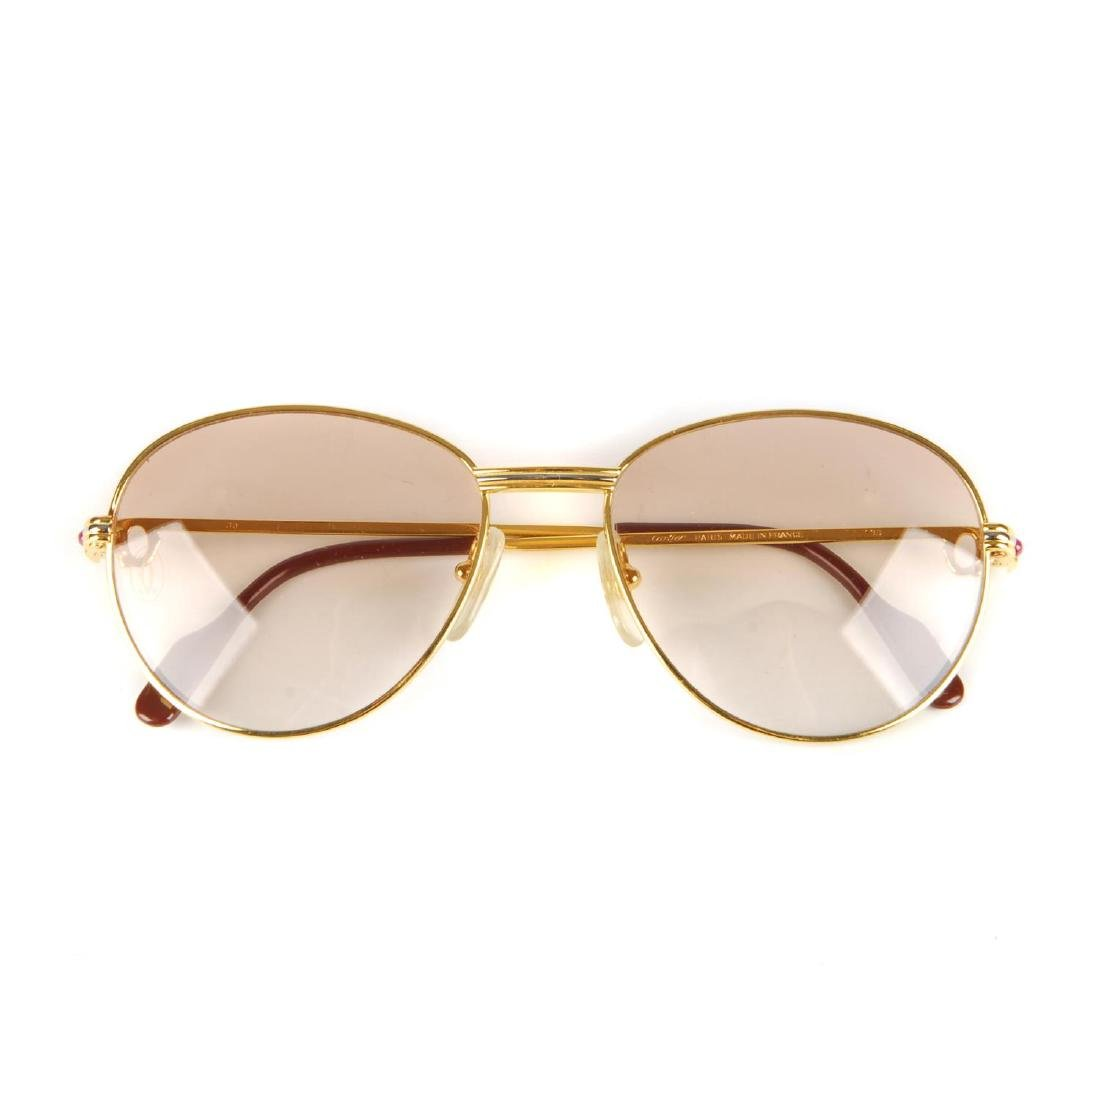 CARTIER - a pair of rose tinted sunglasses. Featuring